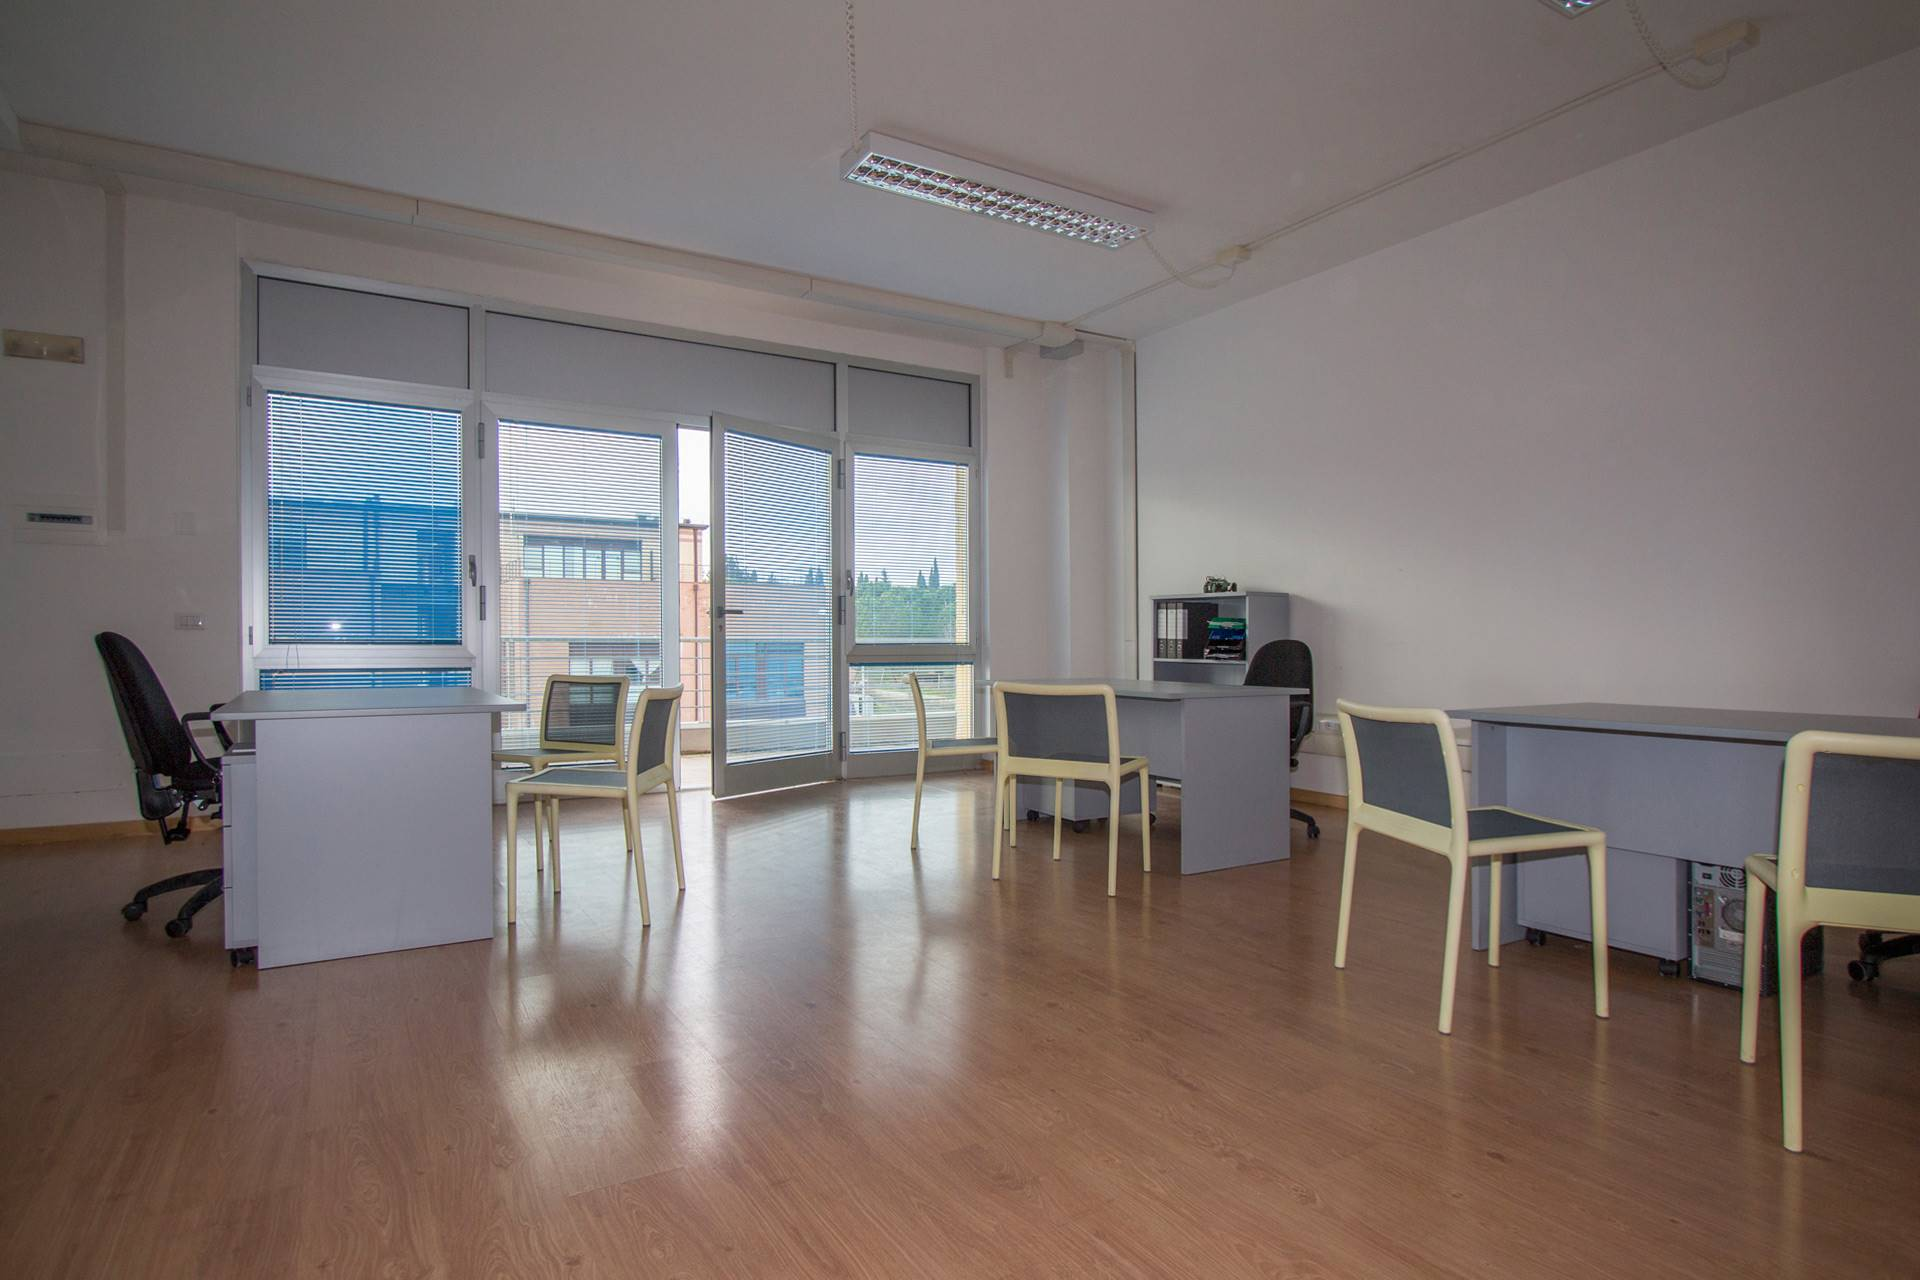 Office for rent consisting of a single room with private entrance, closet that can also be used as an archive, private bathroom. The office enjoys excellent natural light thanks to a glass wall. The